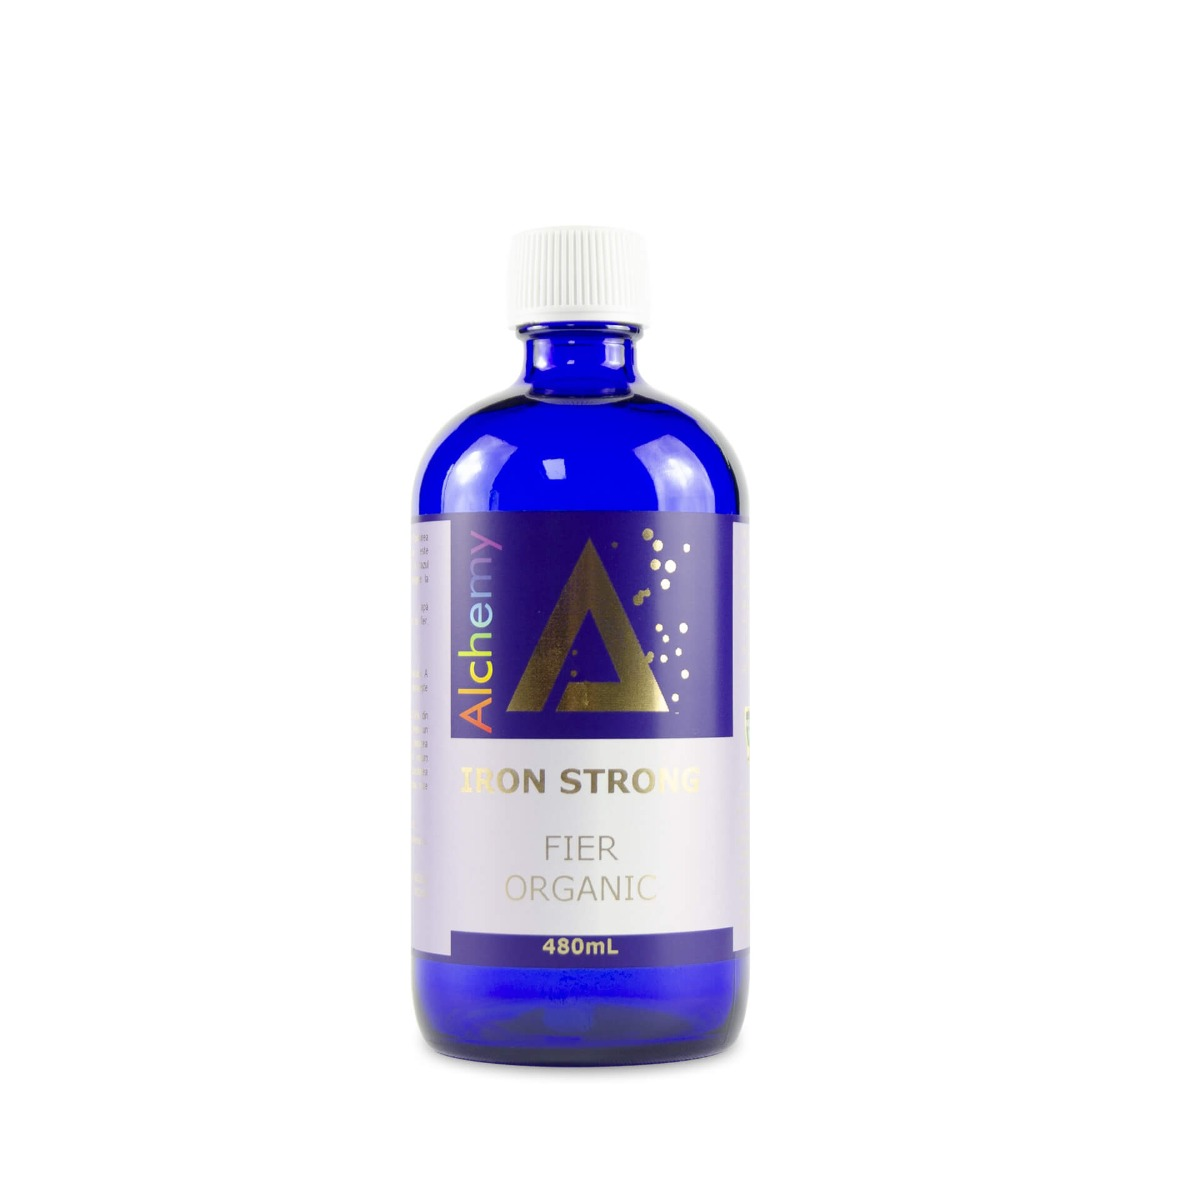 Iron Strong fier ionic organic Alchemy, 480ml, Aghoras drmax.ro